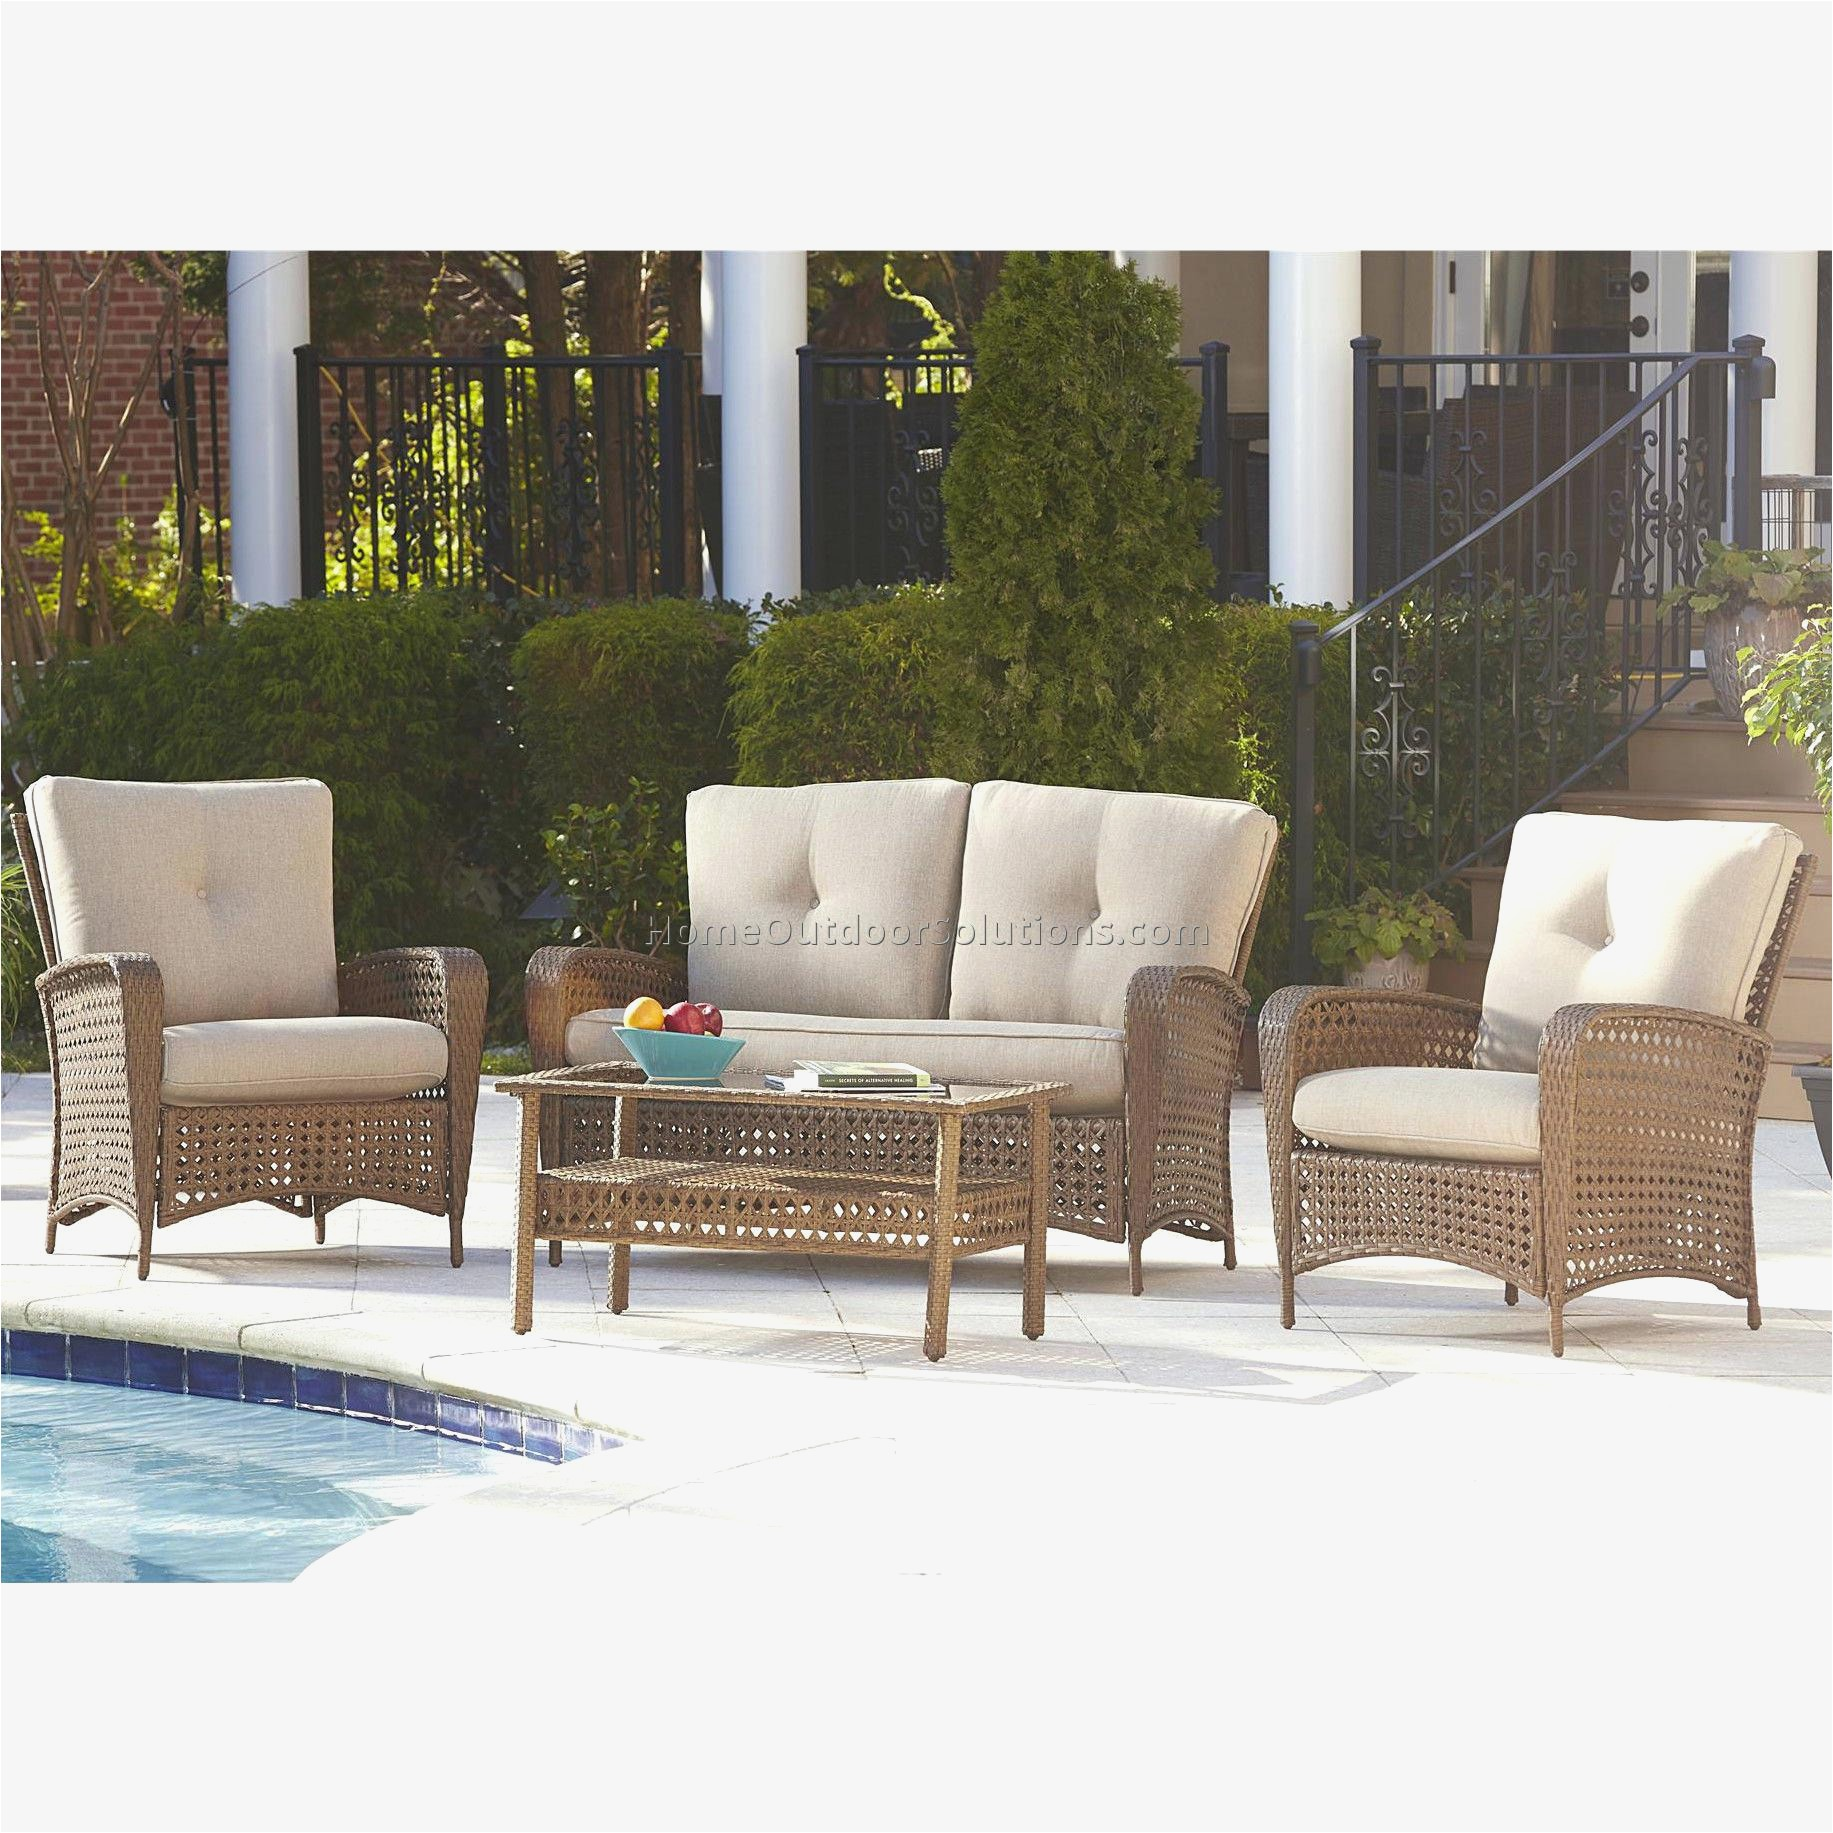 cool king soopers patio furniture design ideas unique on home ideas